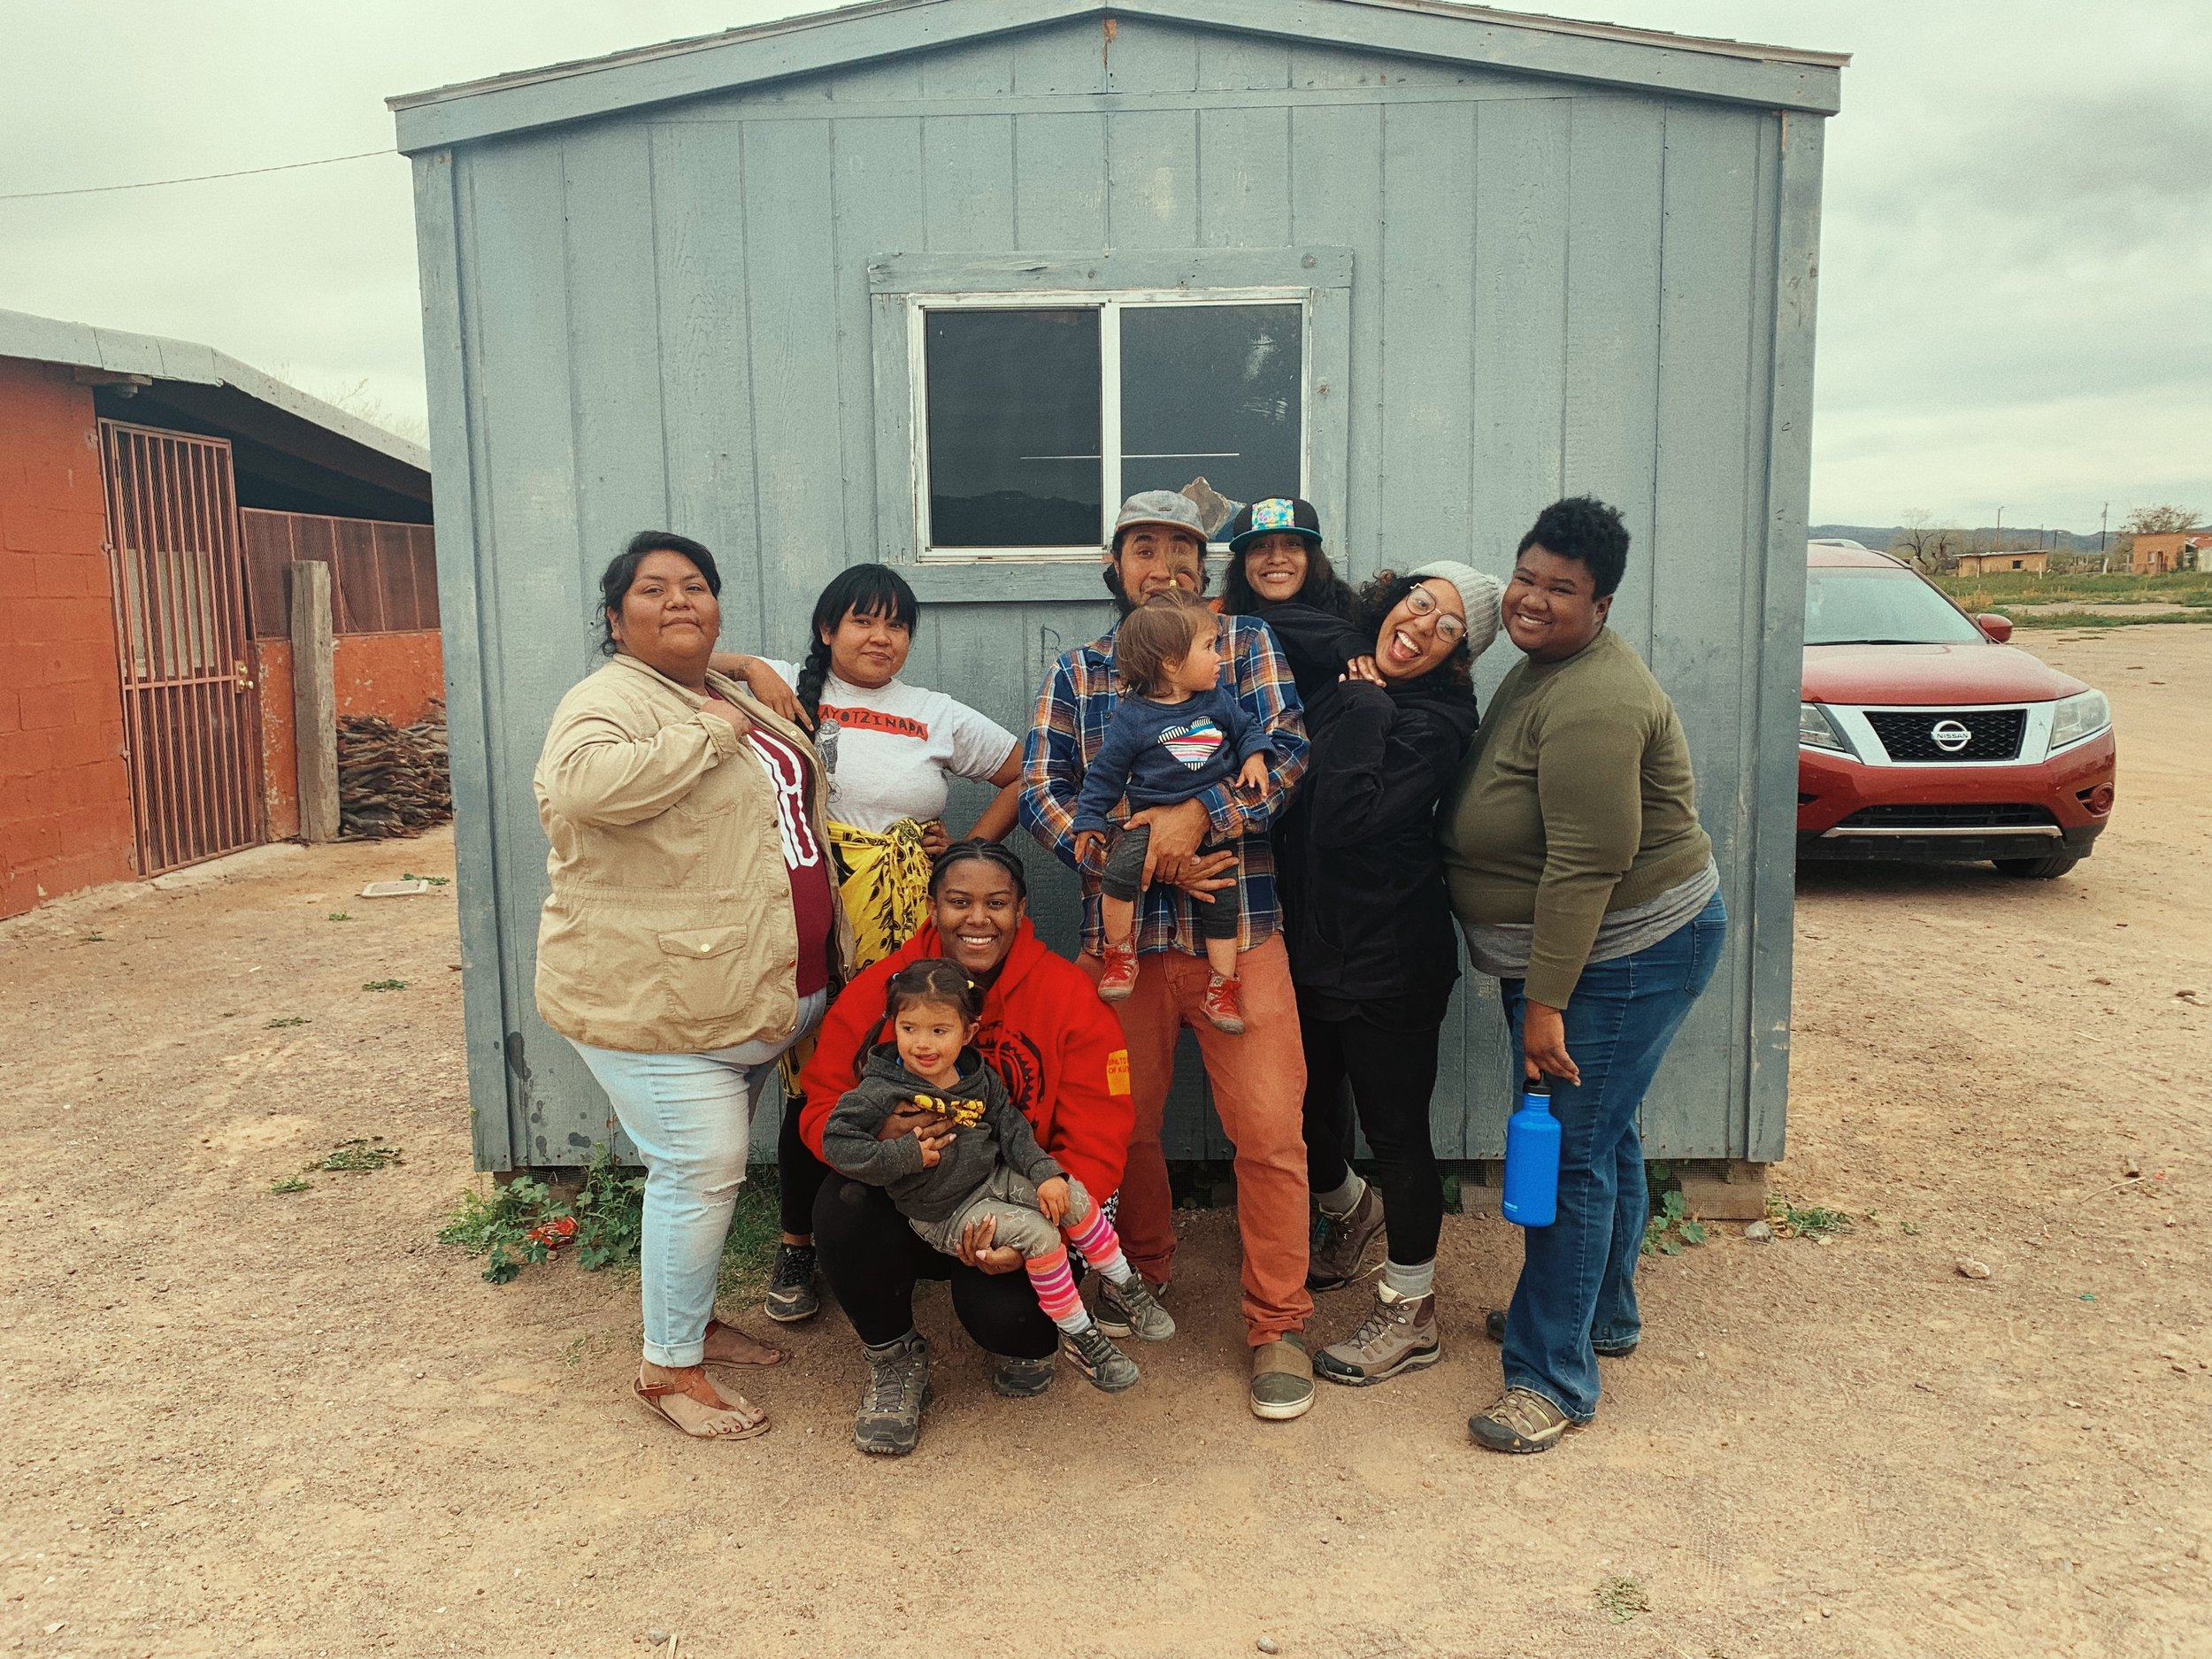 gang, tohono o'odam nation, 2019